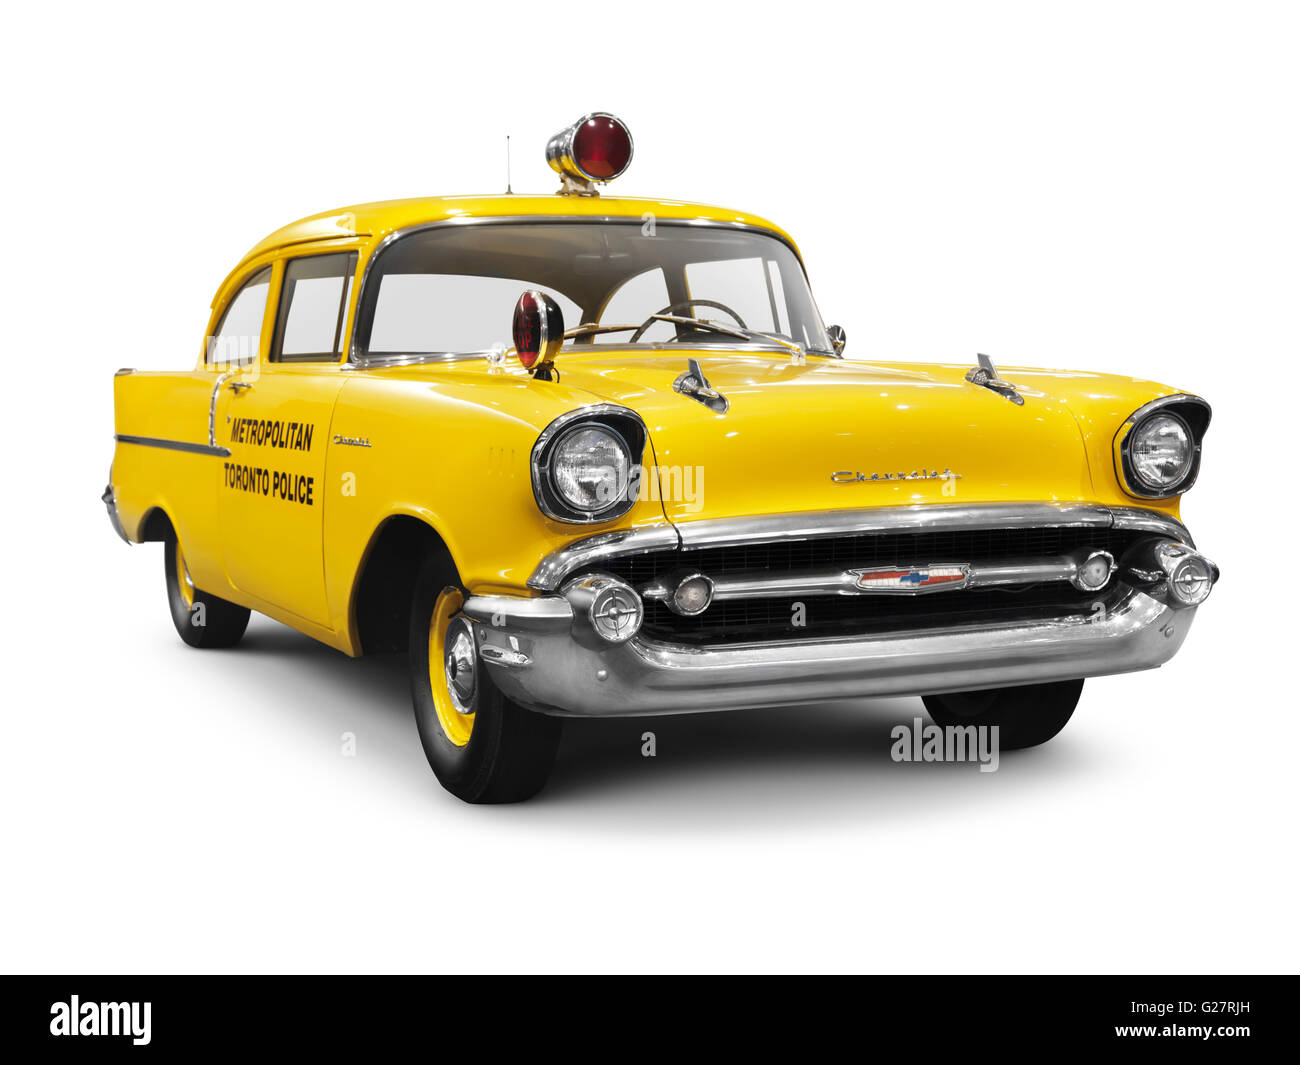 Chevrolet Cut Out Stock Images Pictures Alamy 1957 Sales Brochure 150 A Yellow Metropolitan Toronto Police Classic Car Image